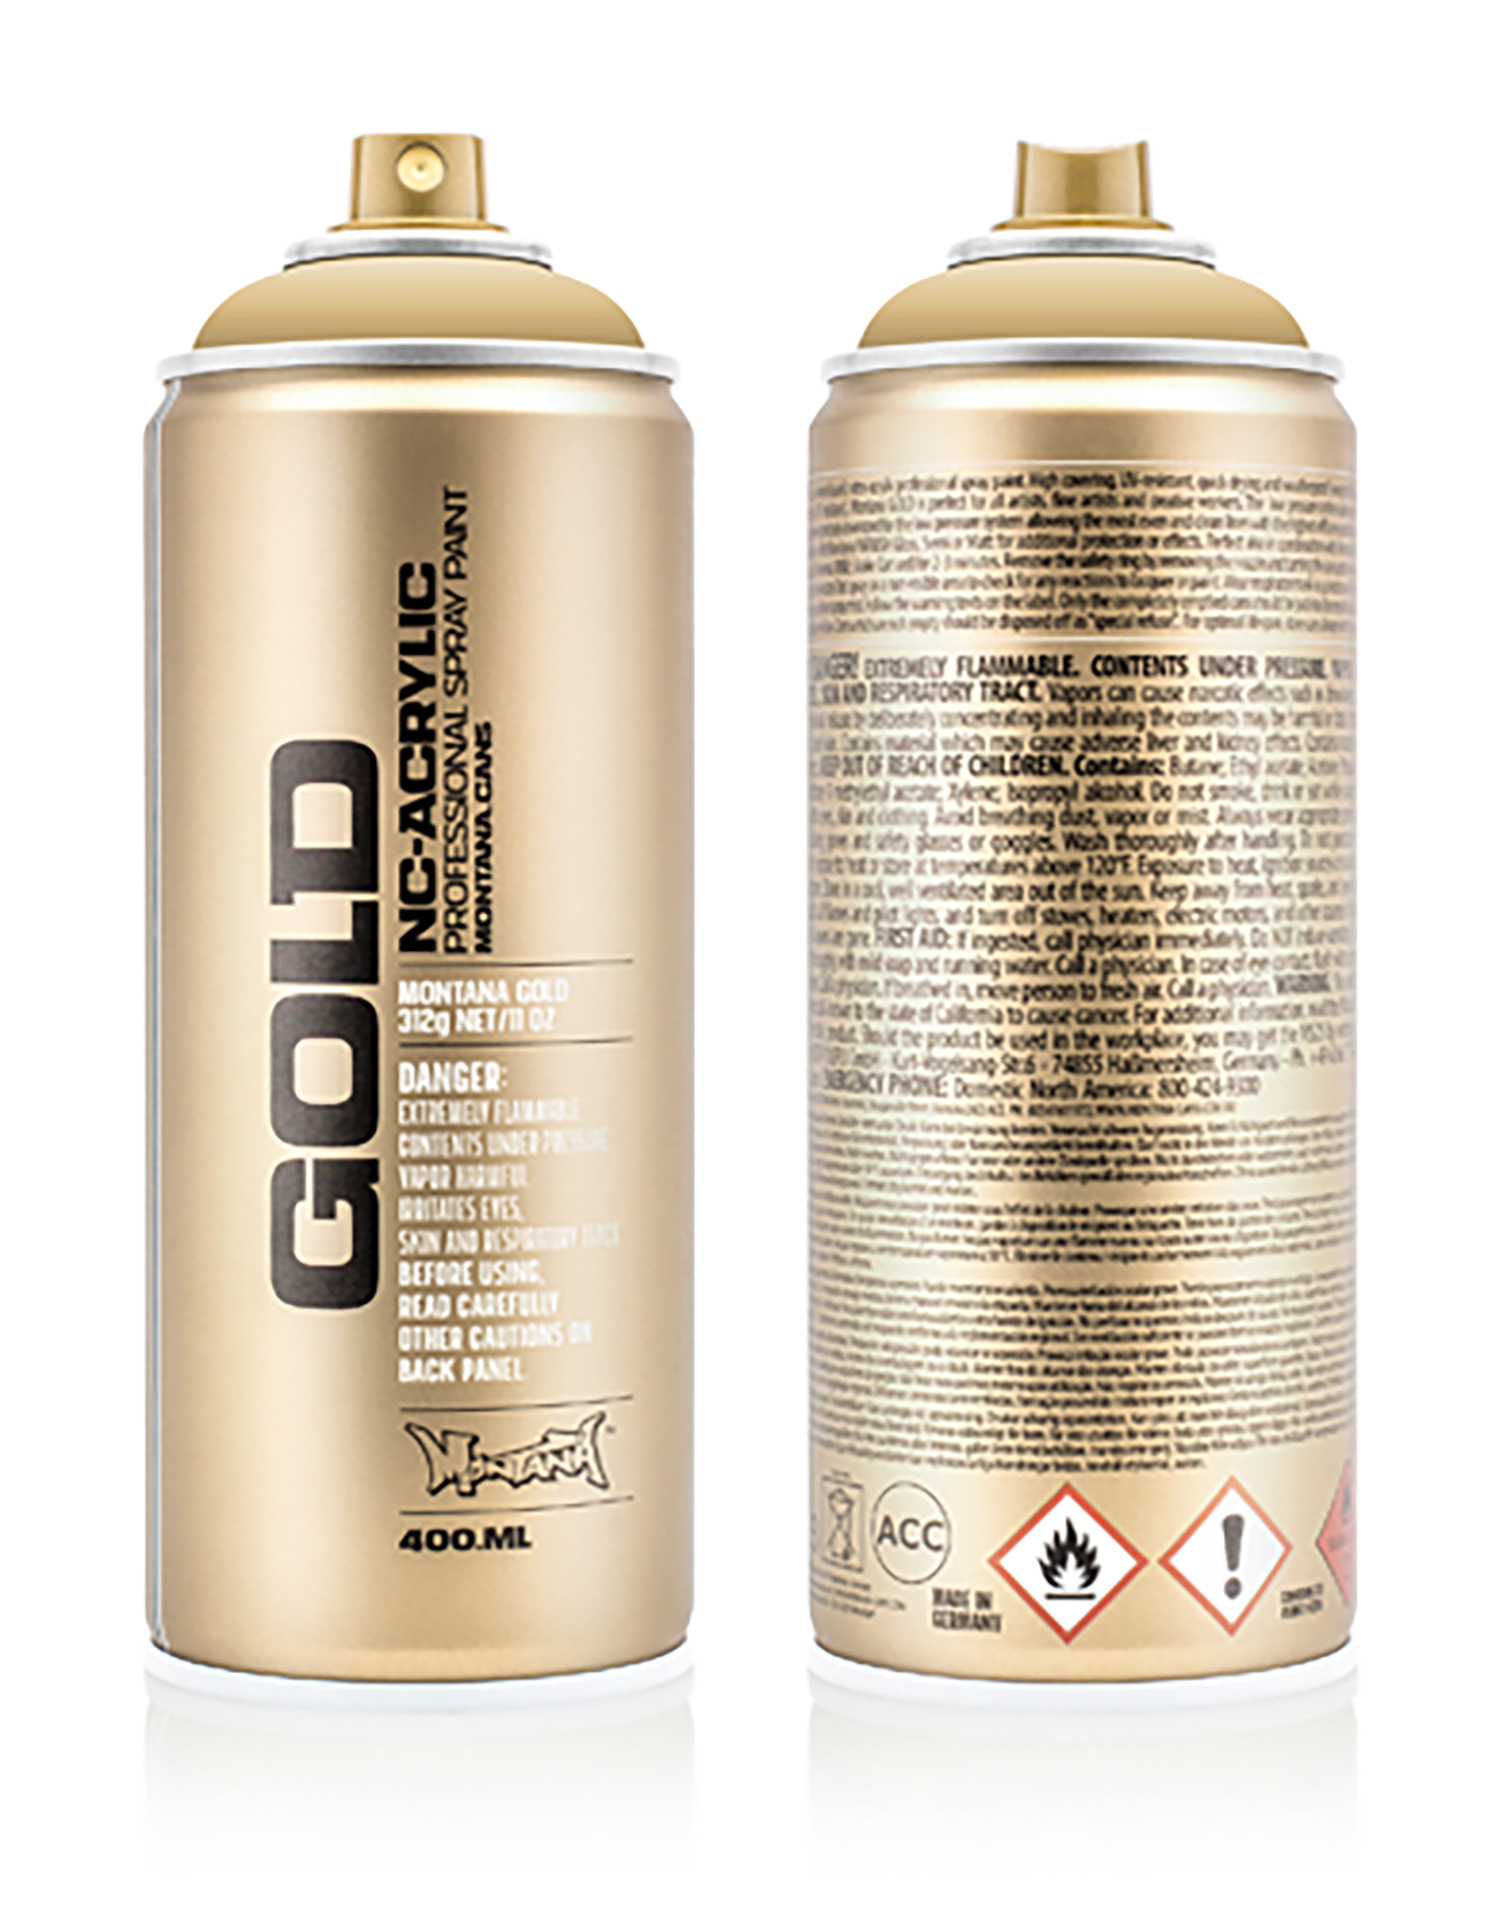 MONTANA-GOLD-SPRAY-400ML-G-8020